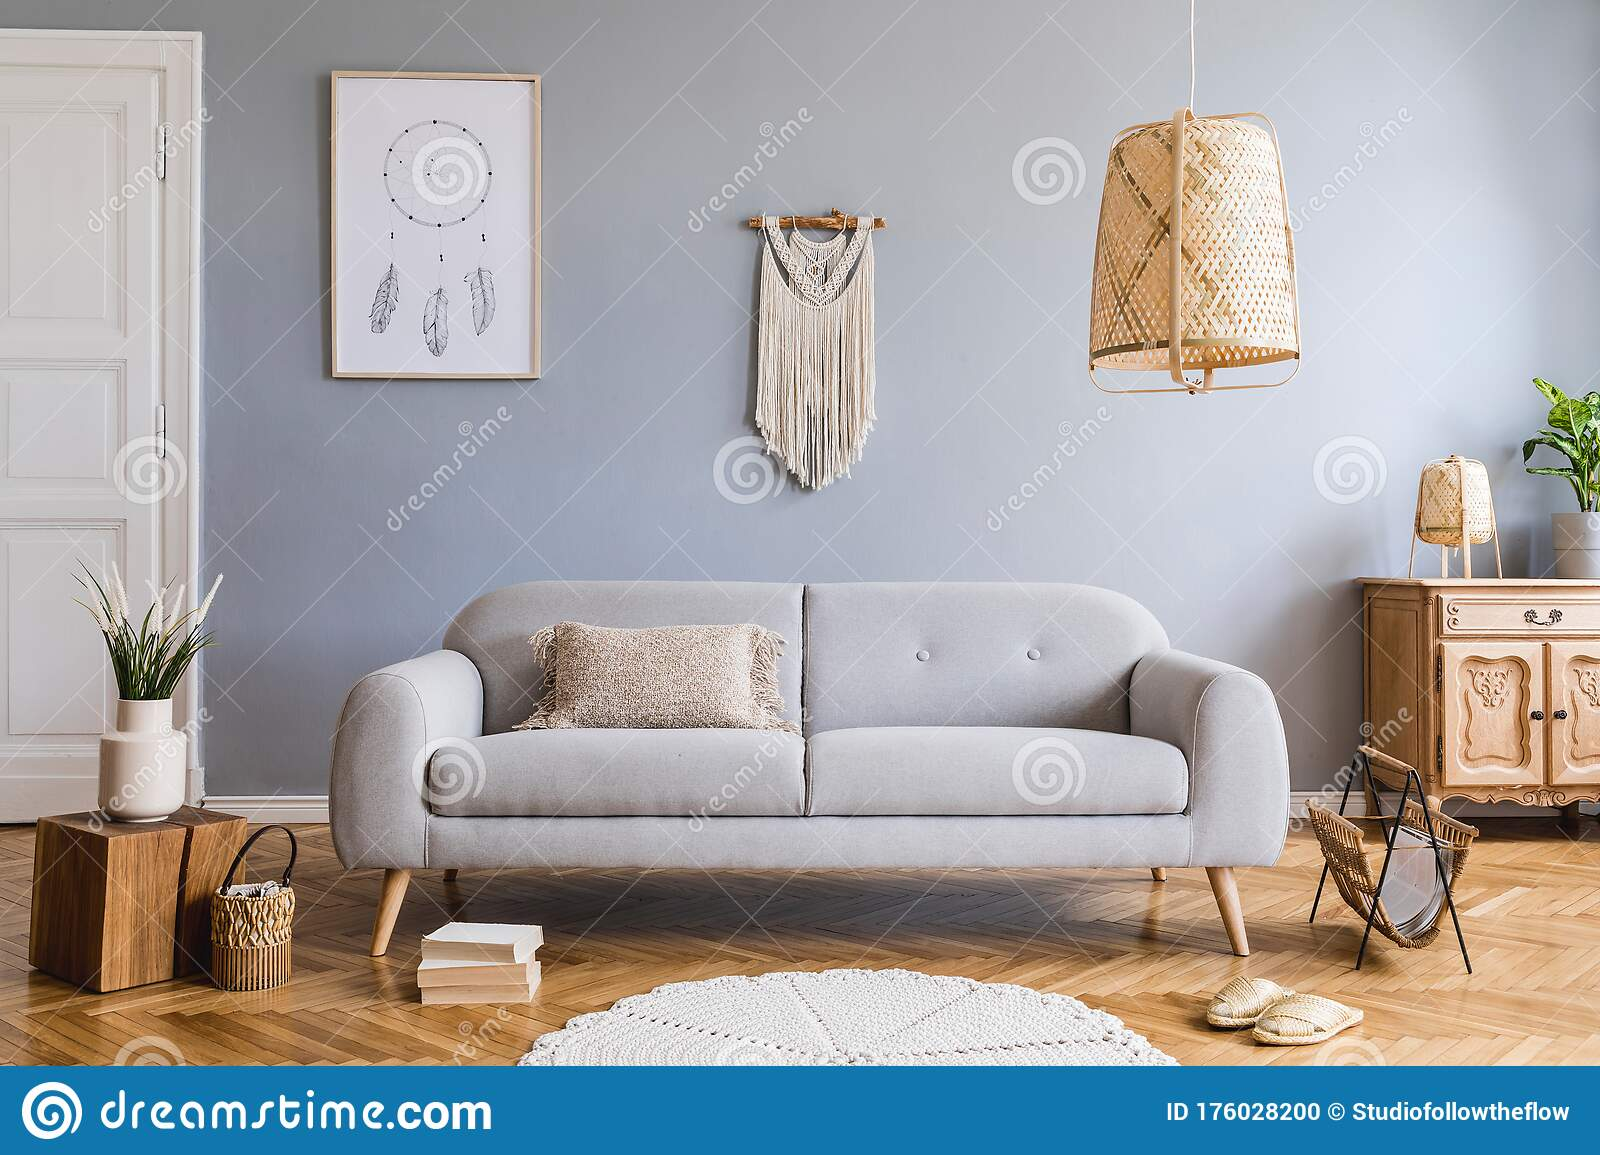 Boho Living Room With Grey Sofa And Natural Accessories Cosy Home Decor Stock Photo Image Of Home Accessories 176028200